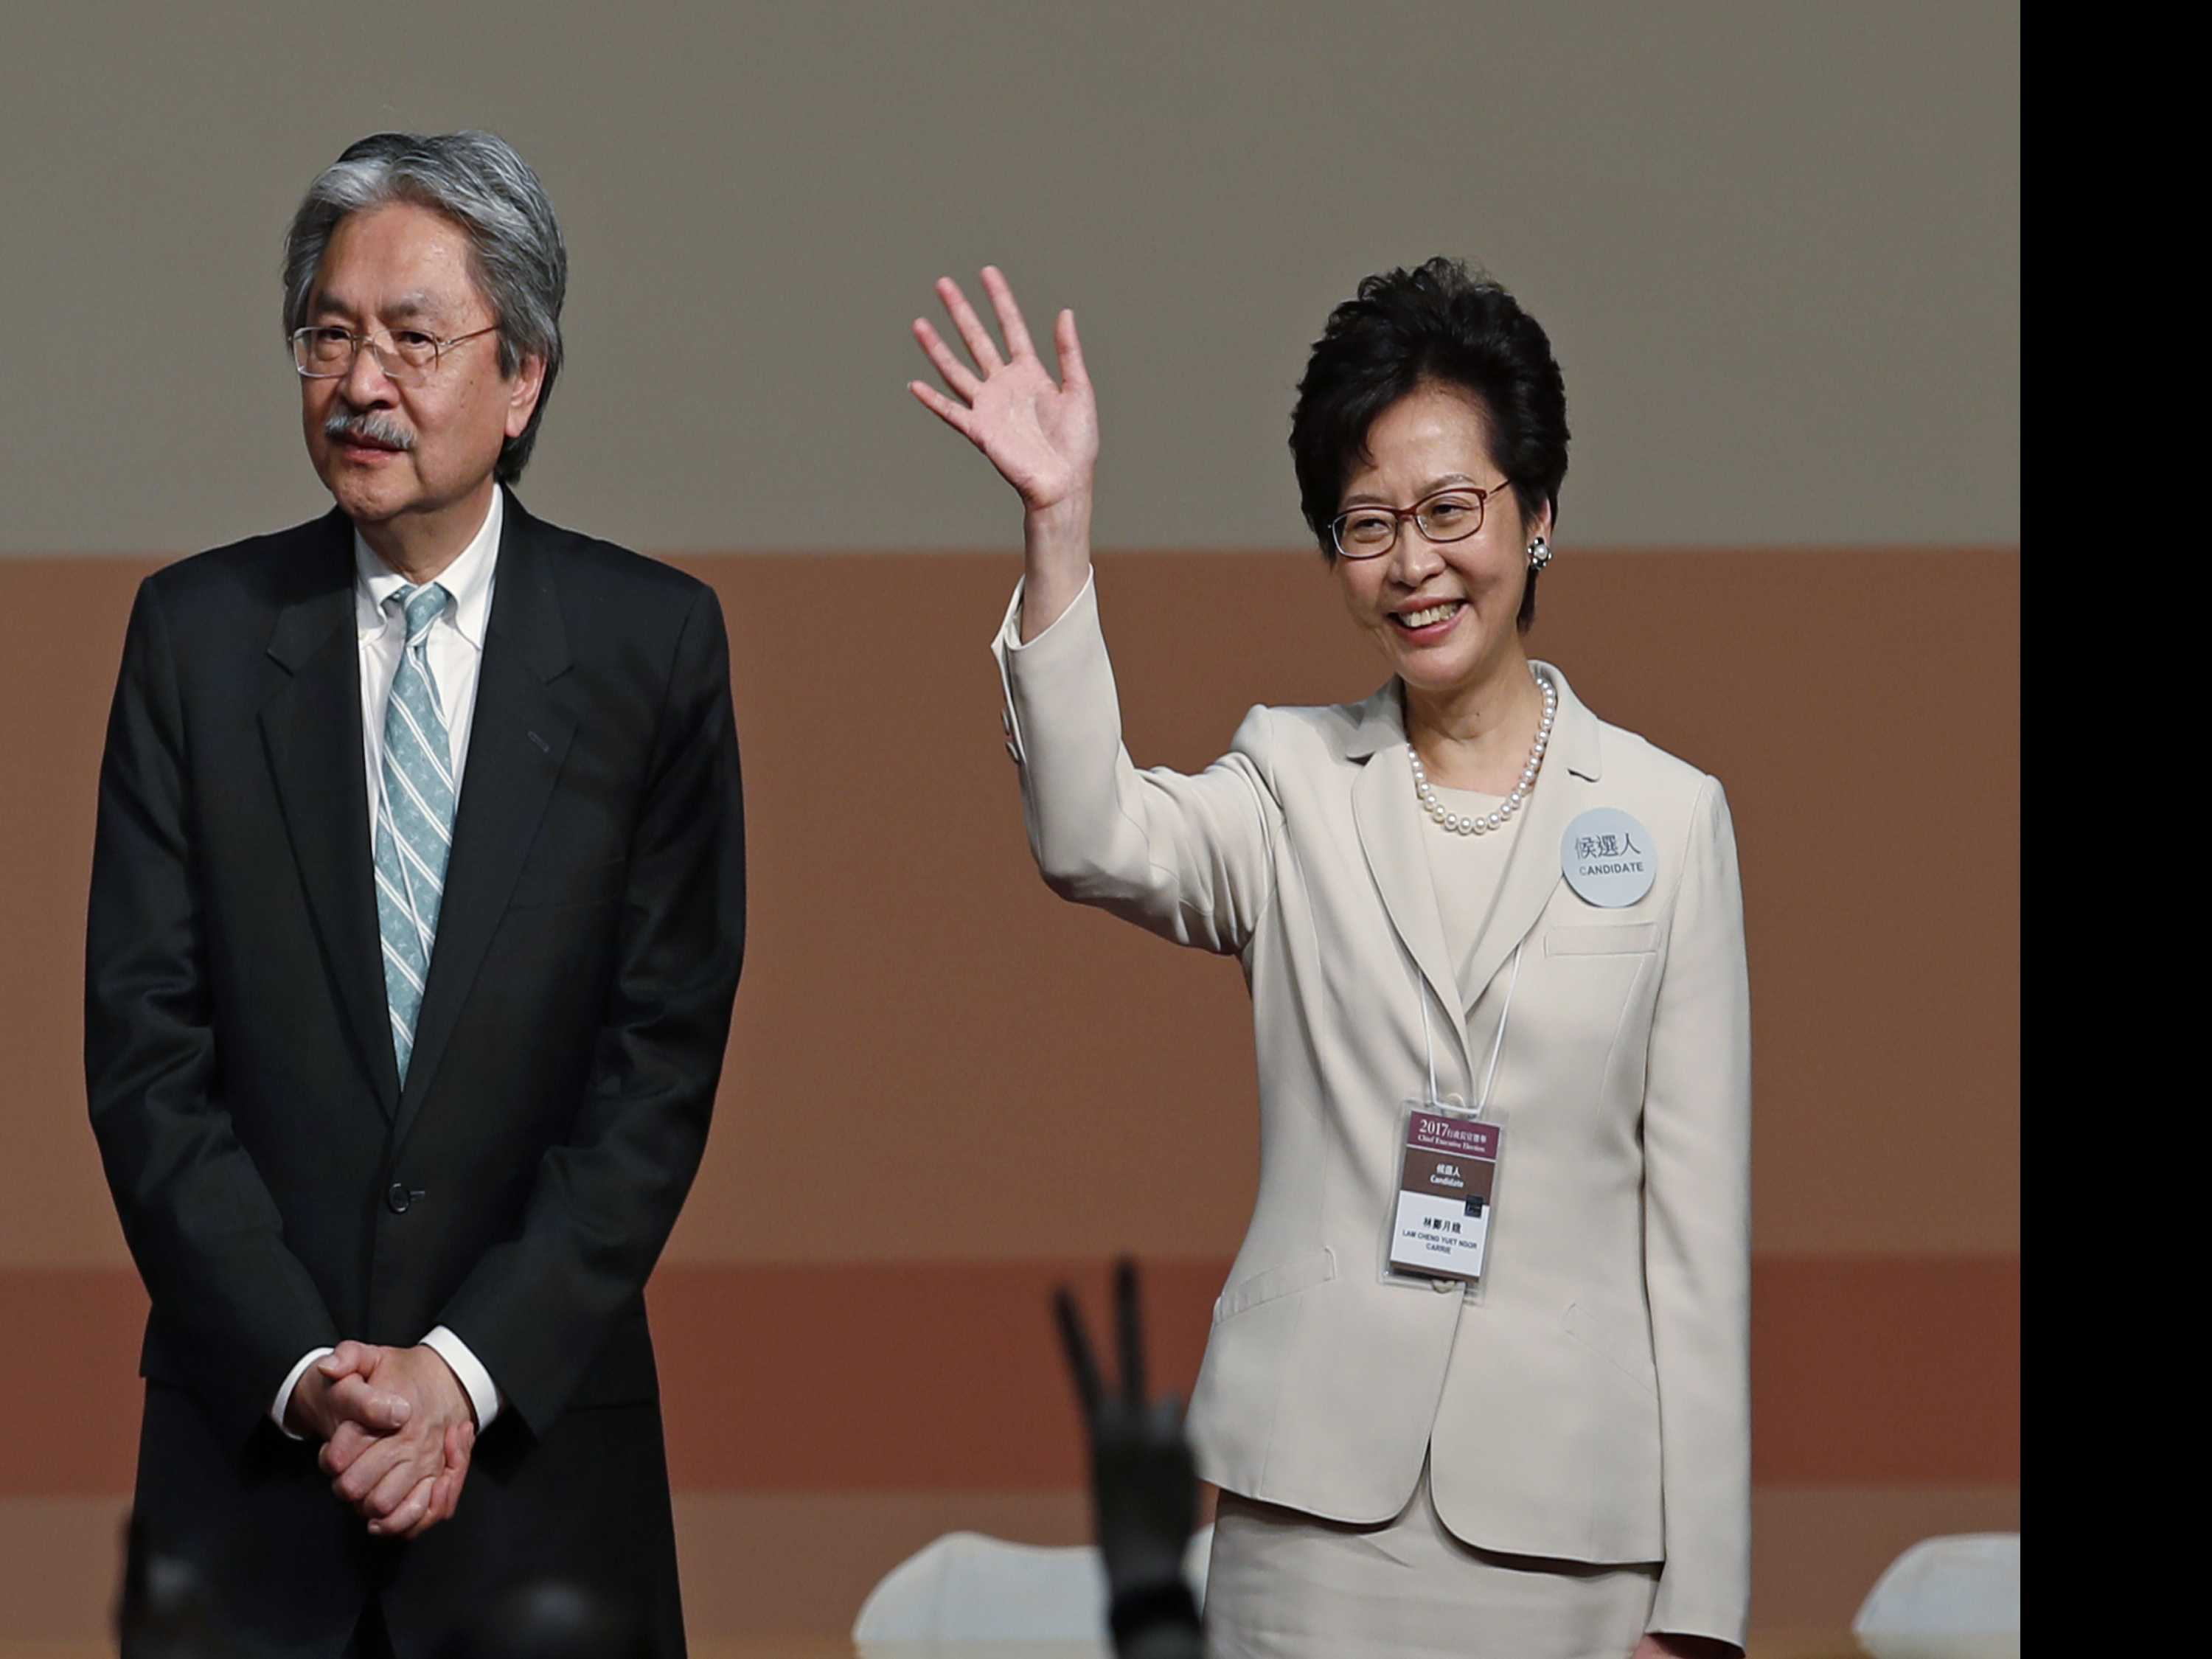 No Surprise: Beijing's Pick Lam Chosen as Hong Kong's Leader